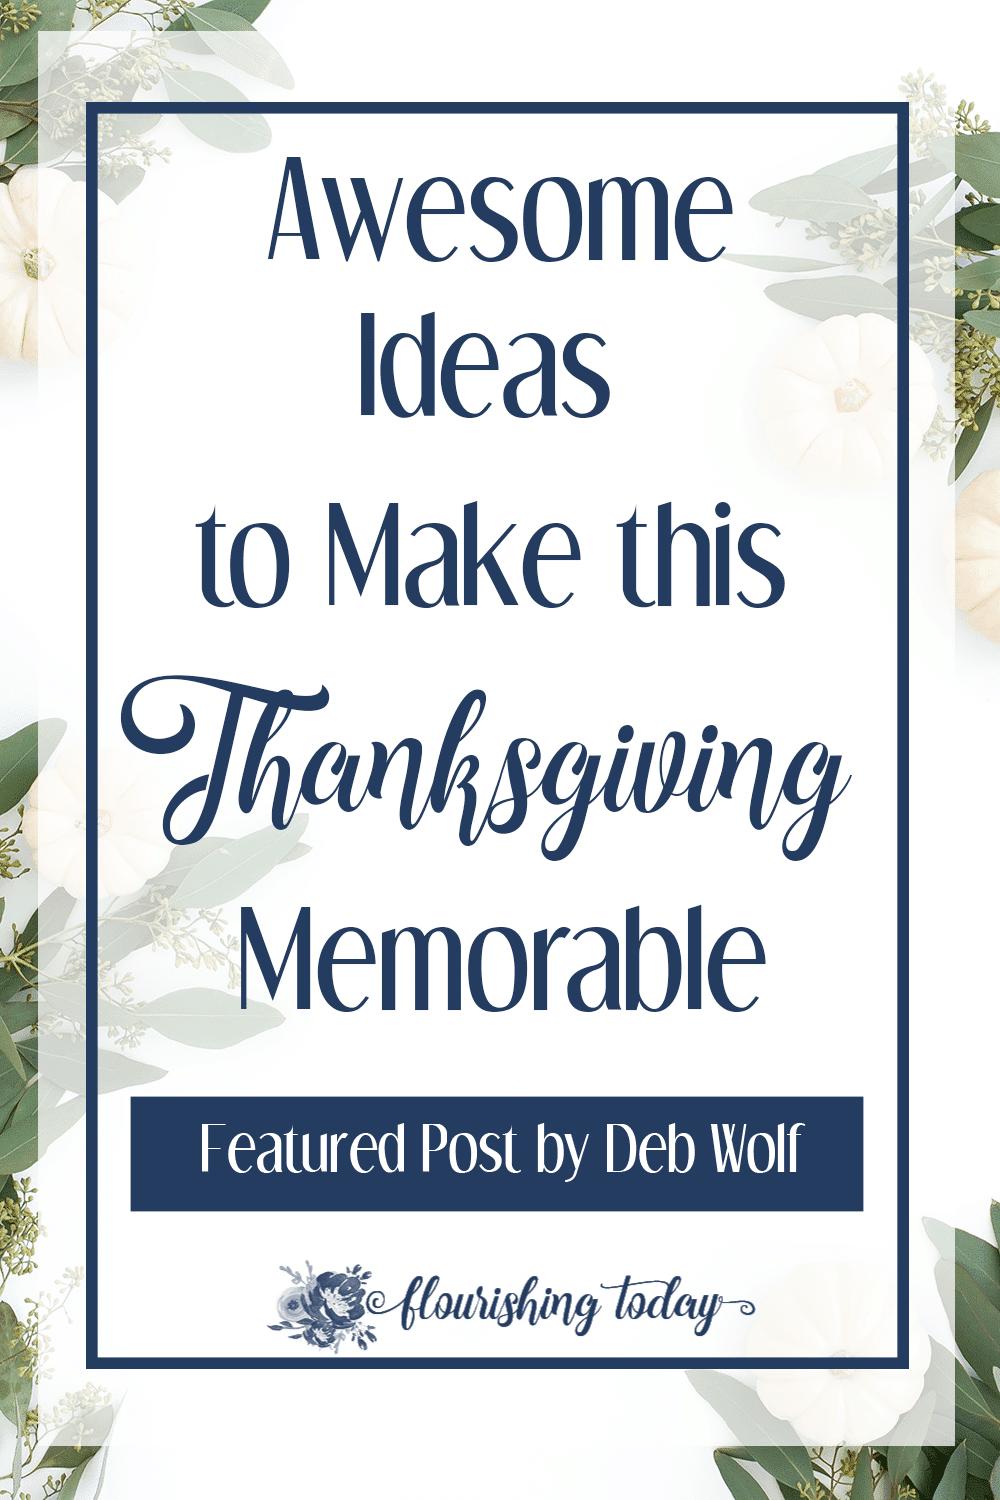 Are you searching for fun ideas for Thanksgiving this year? Here are 10 ideas to give your family a memorable Thanksgiving this year!